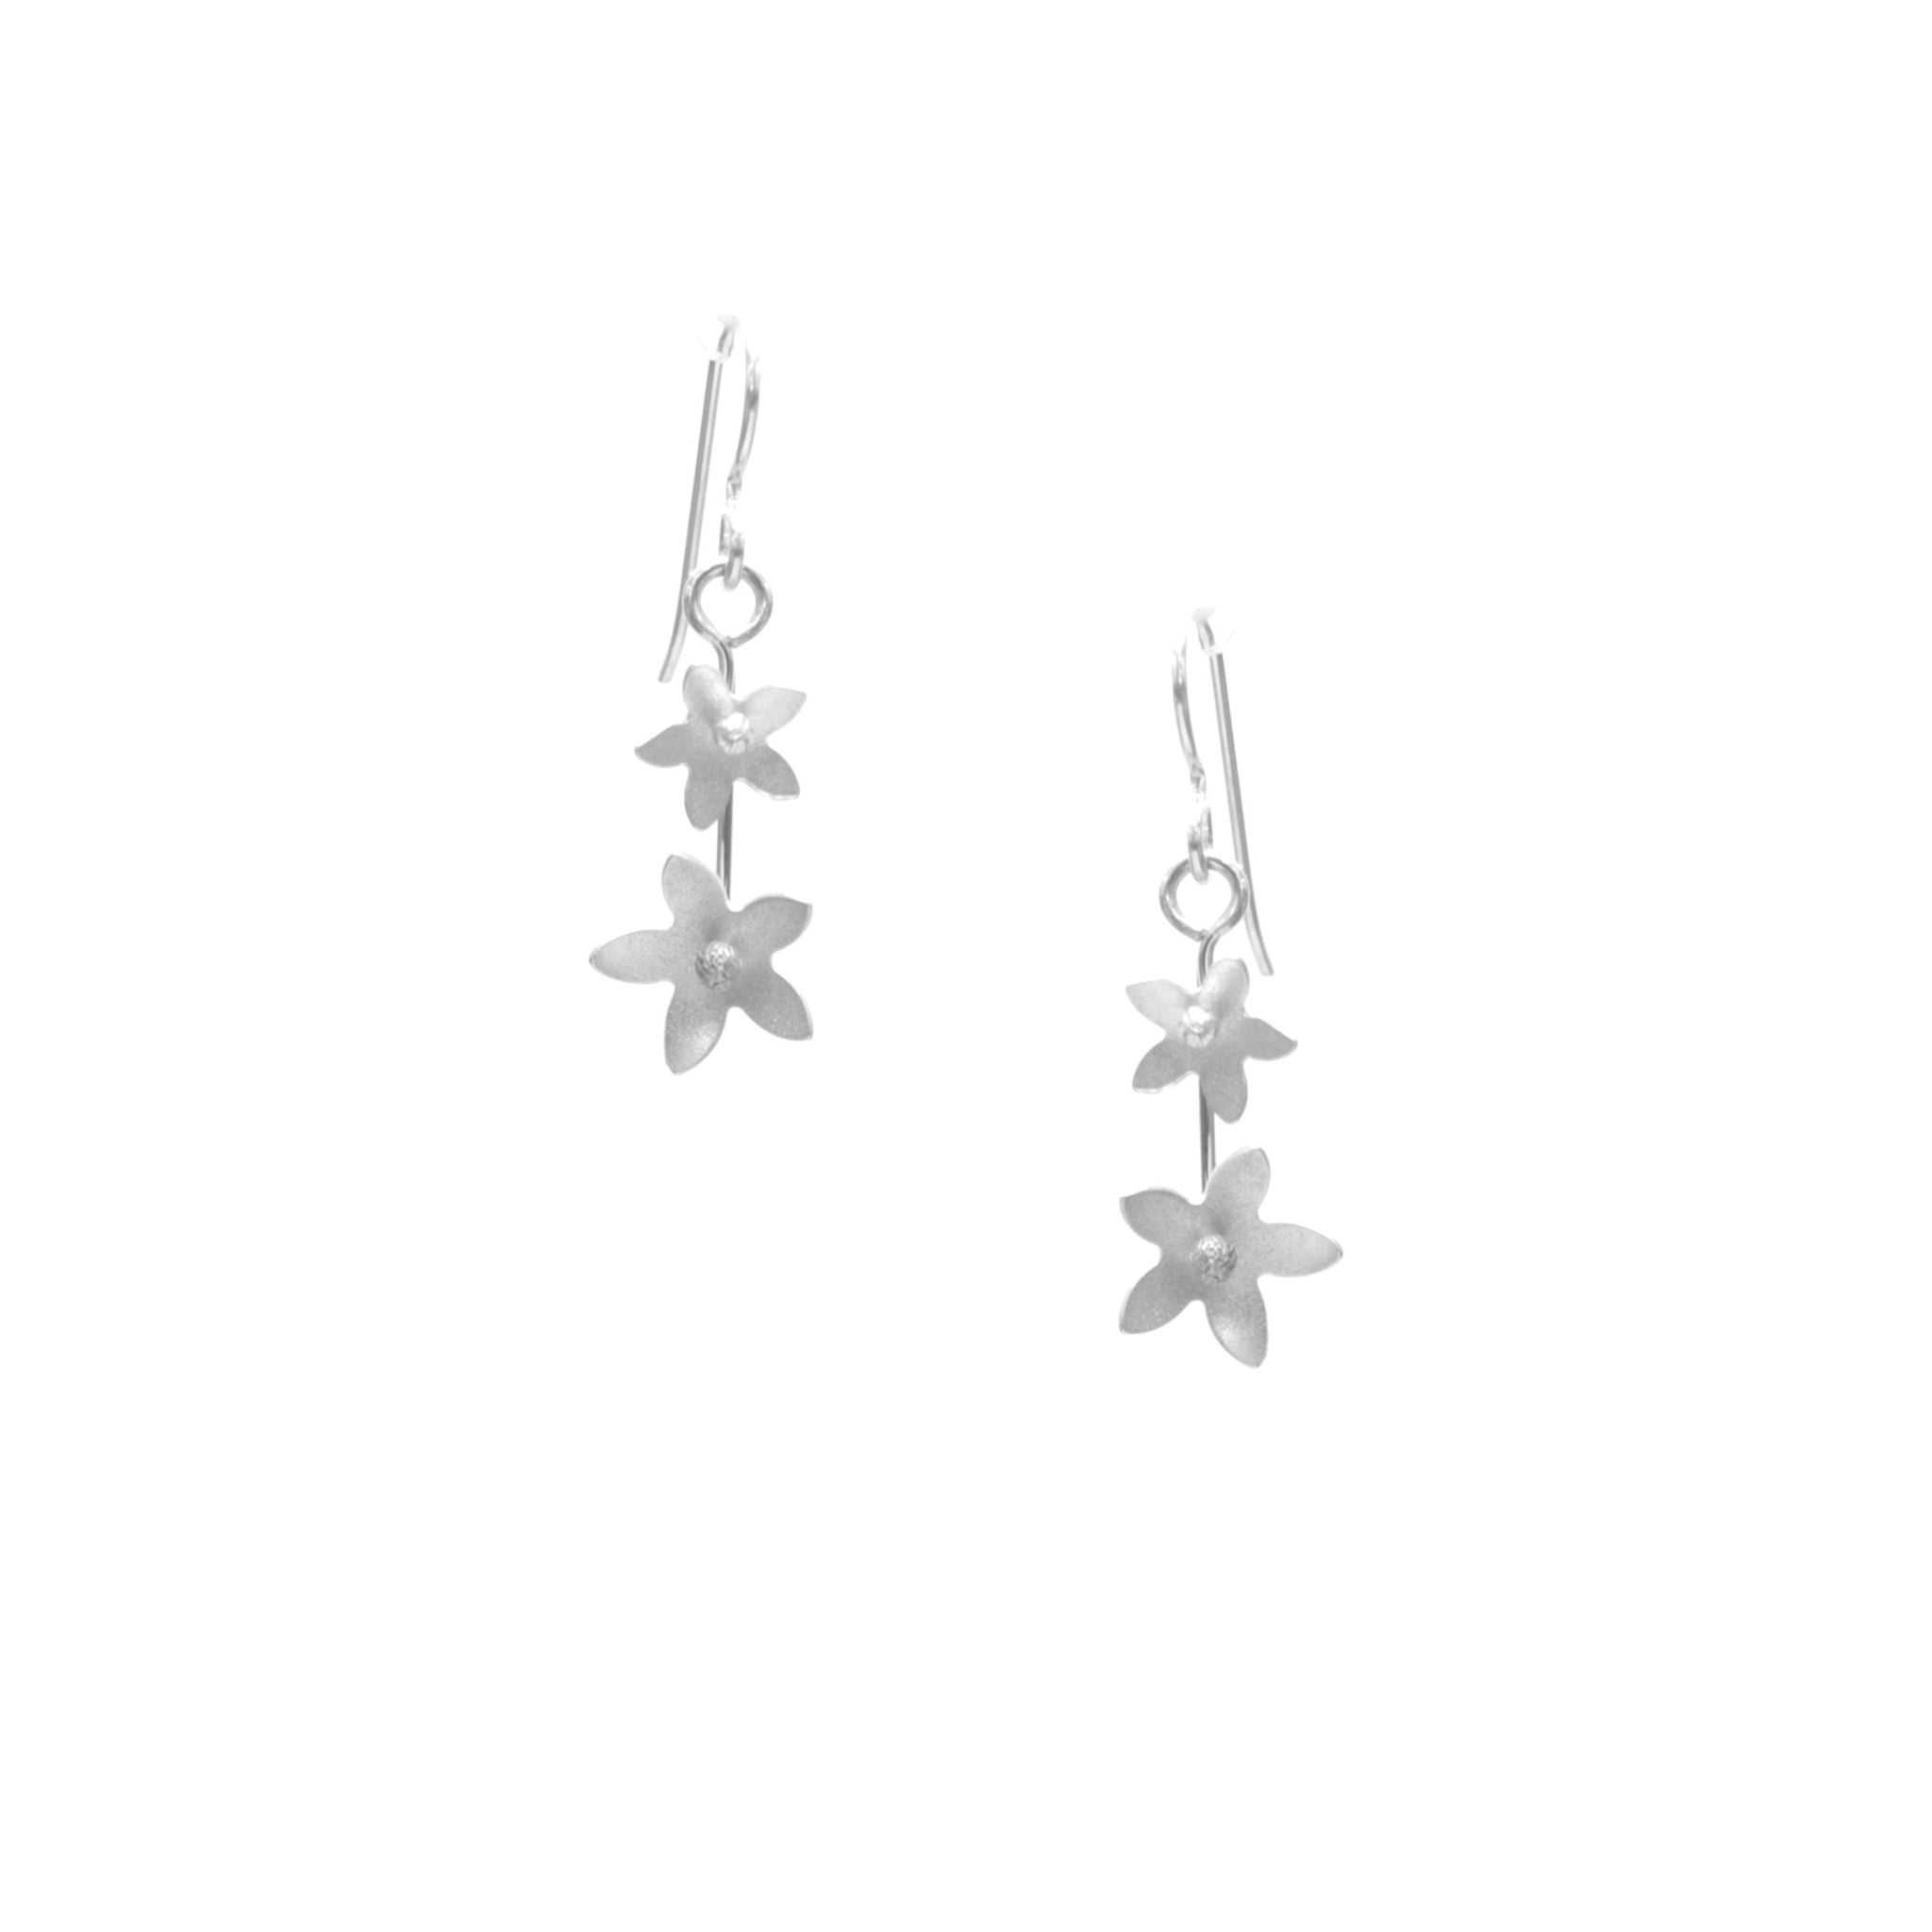 Jasmine Earrings, Petite Double Blossom Drop